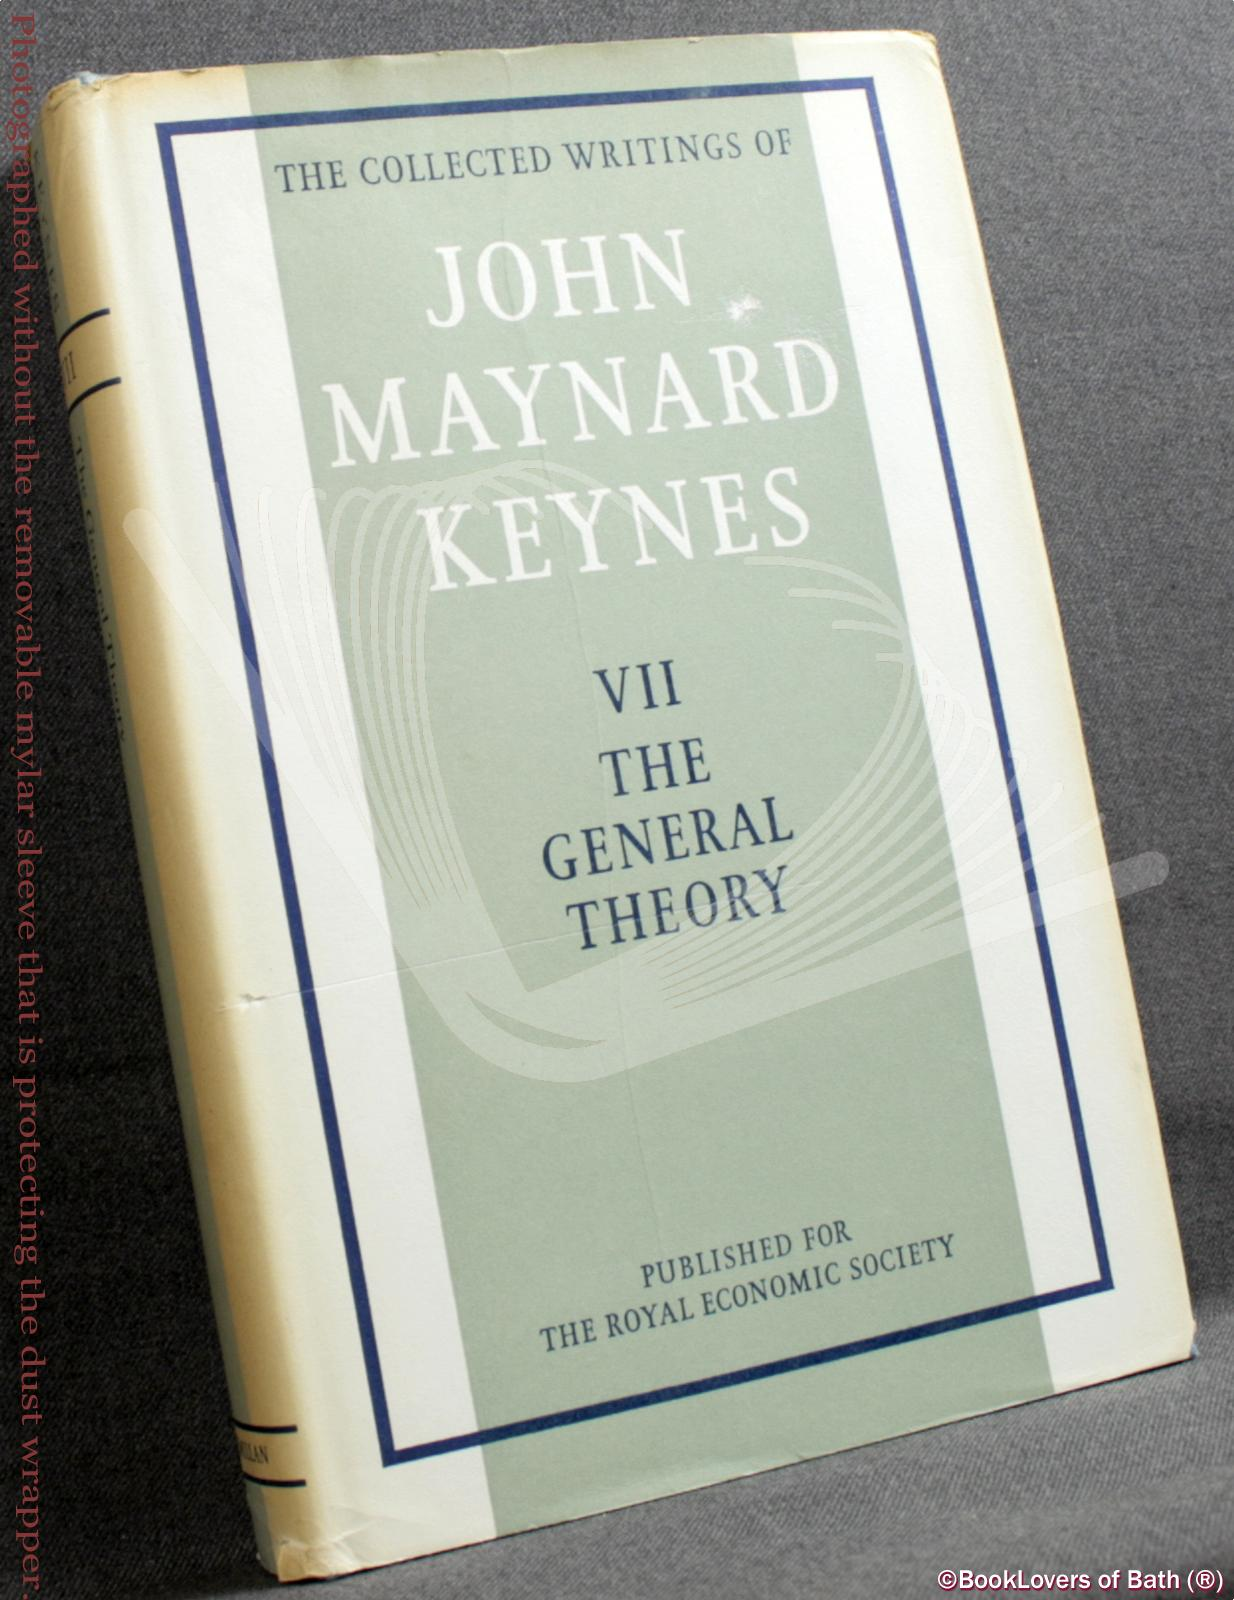 The General Theory of Employment Interest and Money - John Maynard Keynes